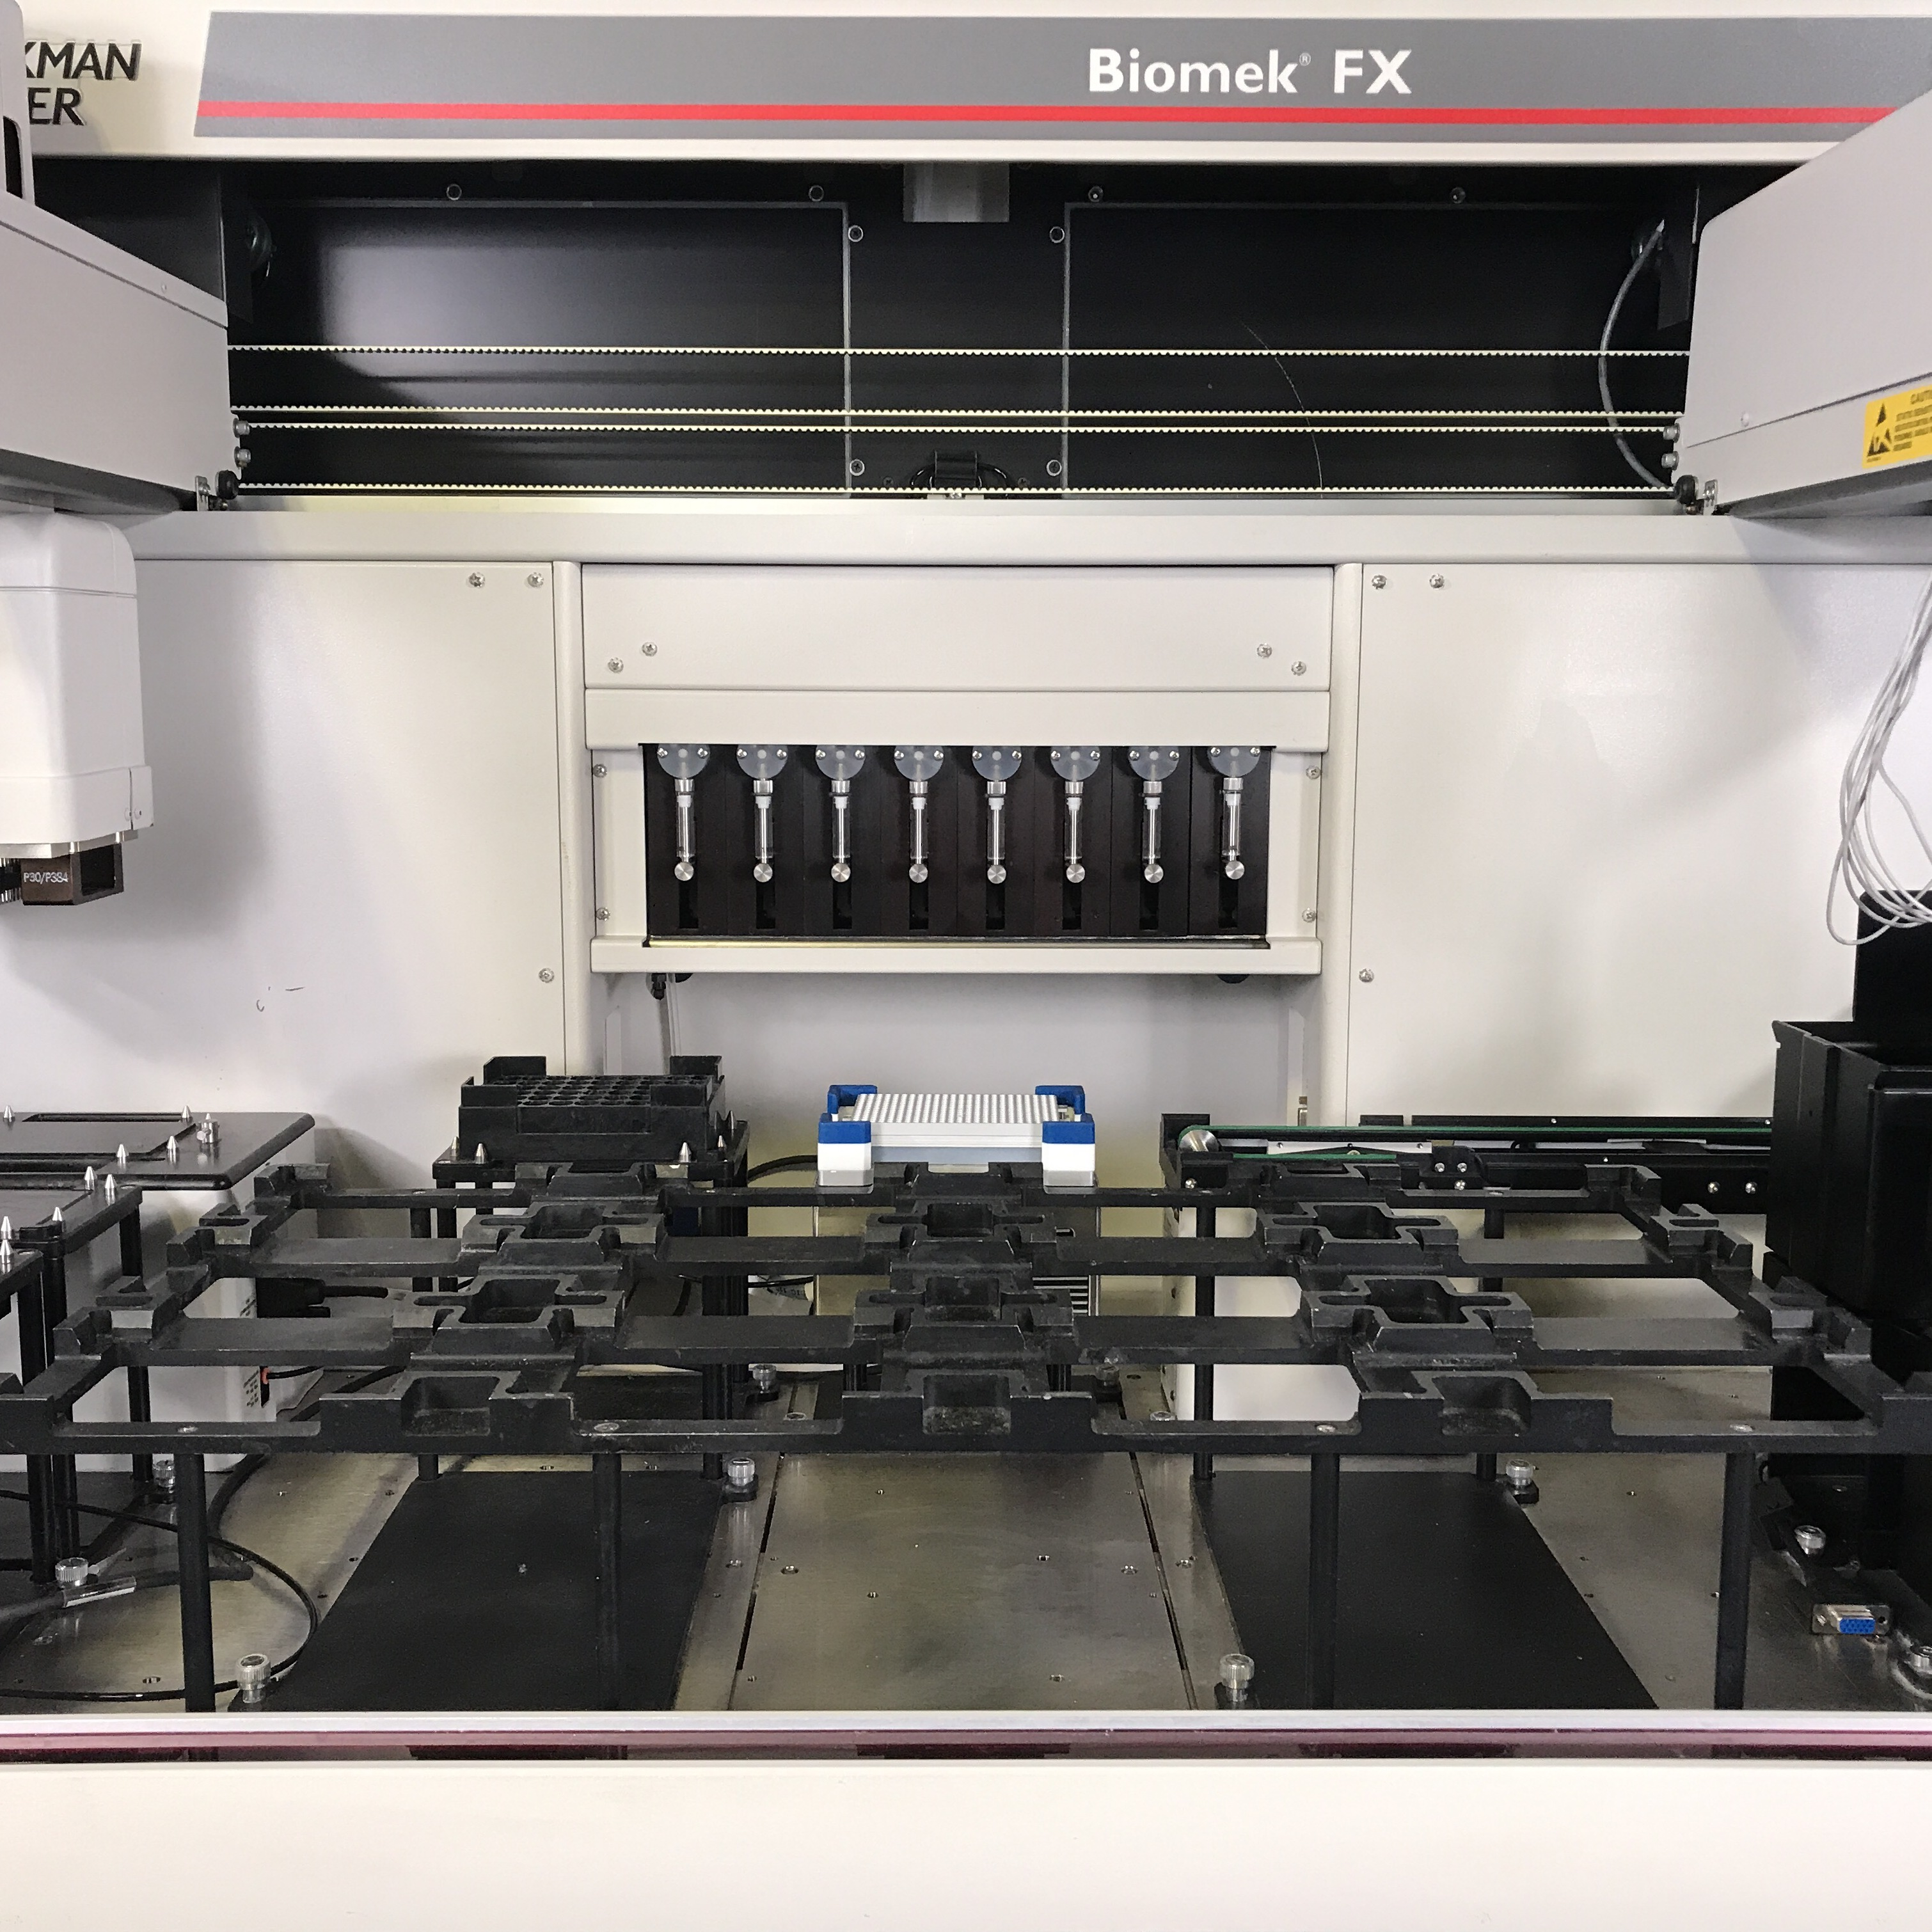 Beckman Coulter Biomek FX Laboratory Automation Workstation Image